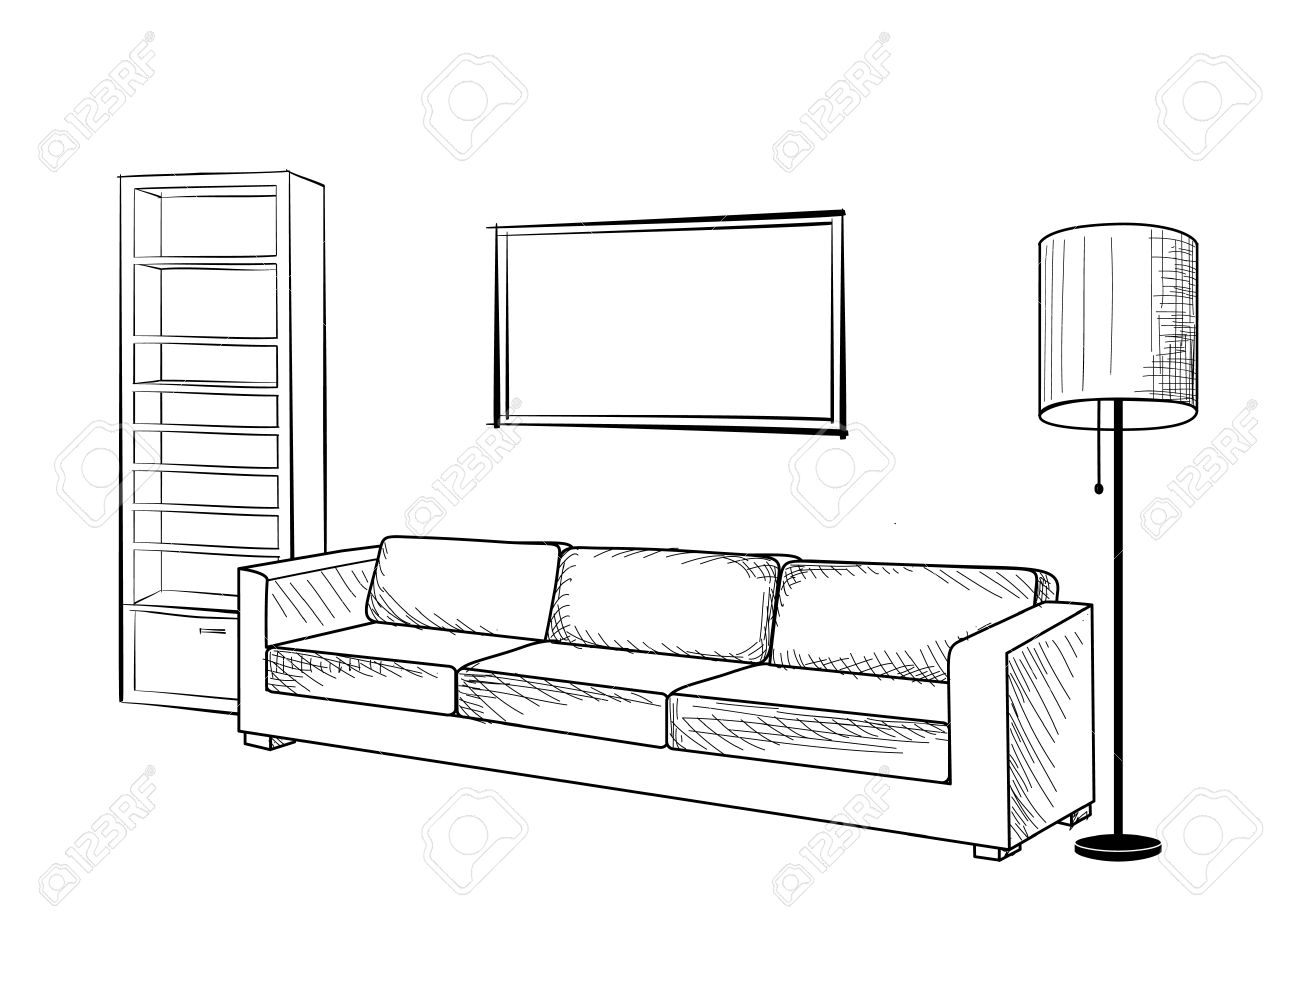 Living room clipart black and white - Interior Furniture With Sofa Floor Lamp Book Shelf Books And Drawing Living Room